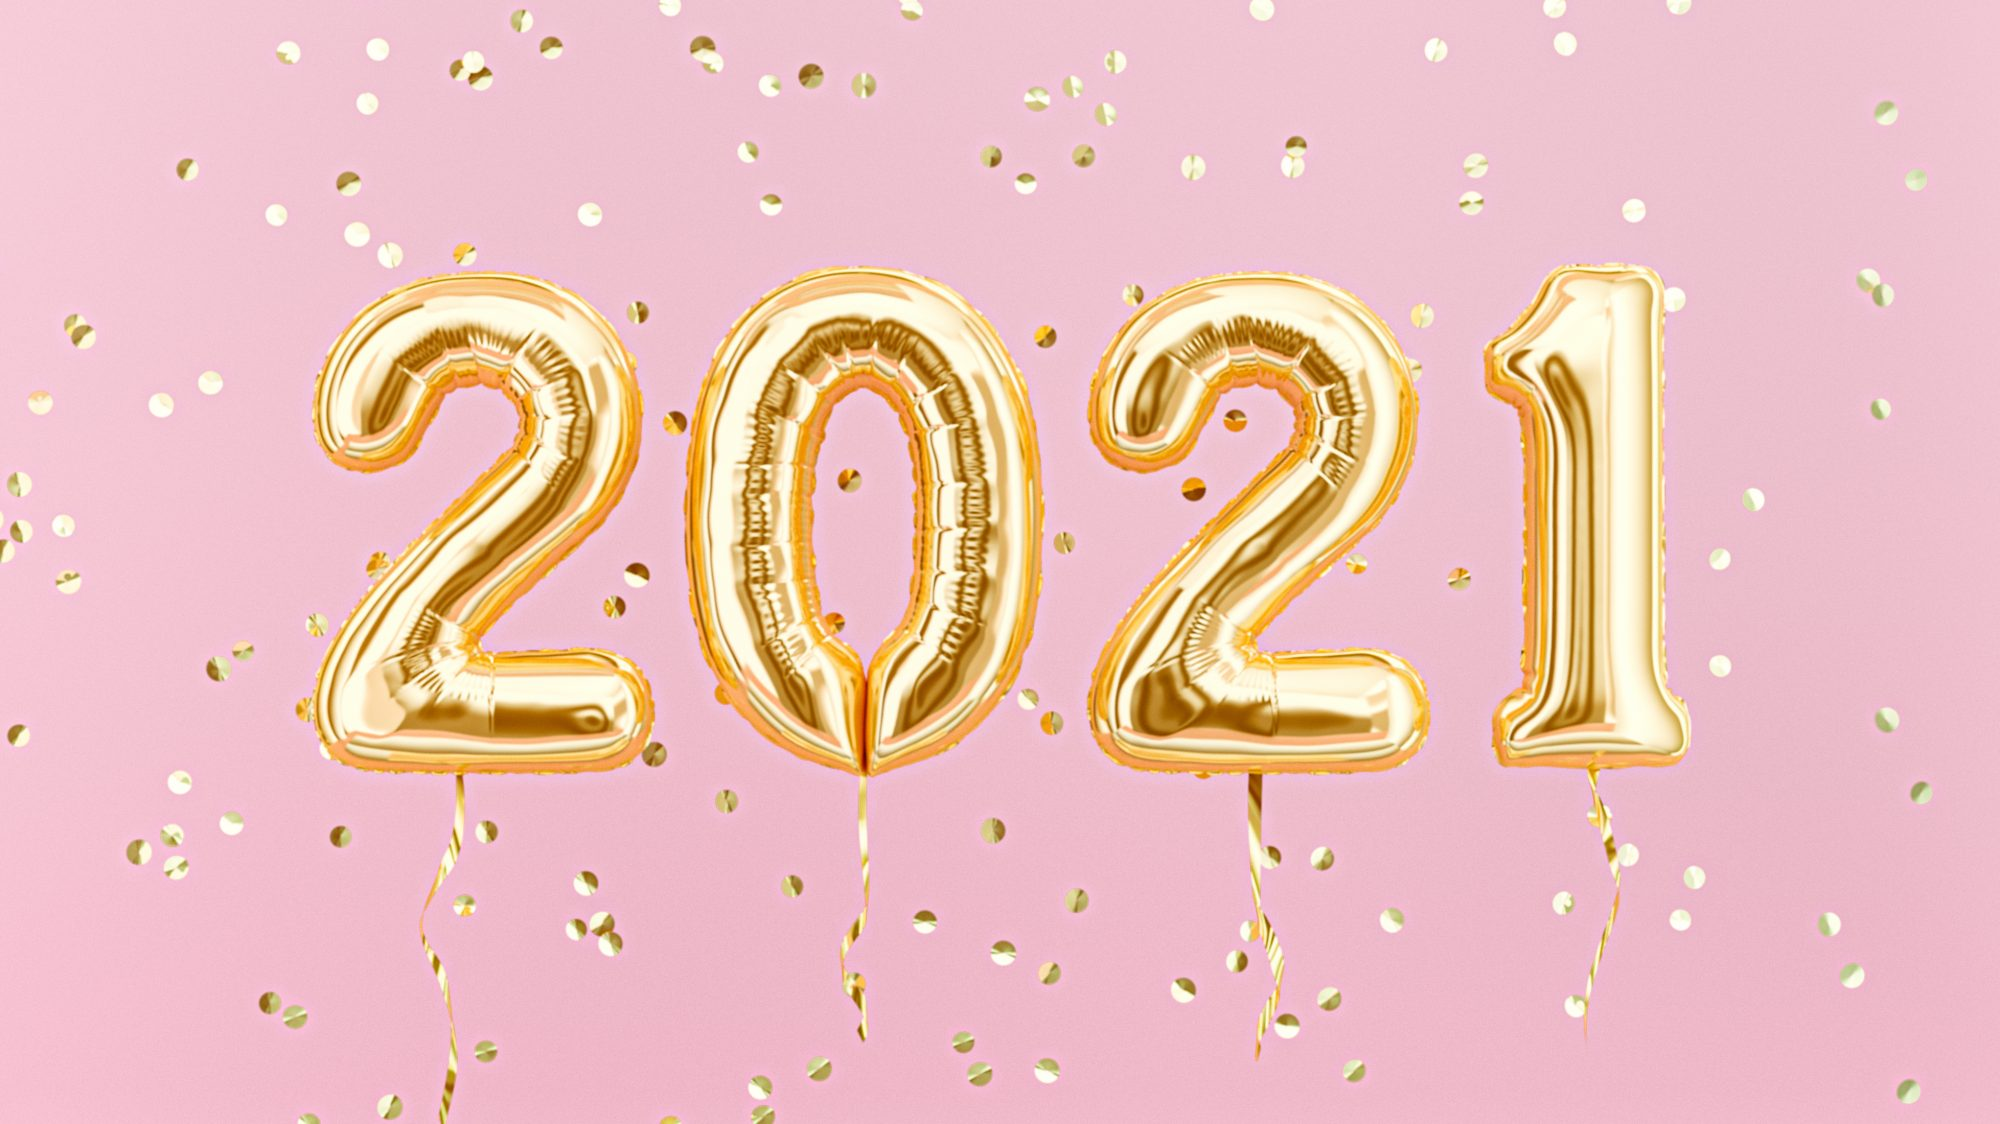 New years quotes, sayings, captions - 2021 balloons